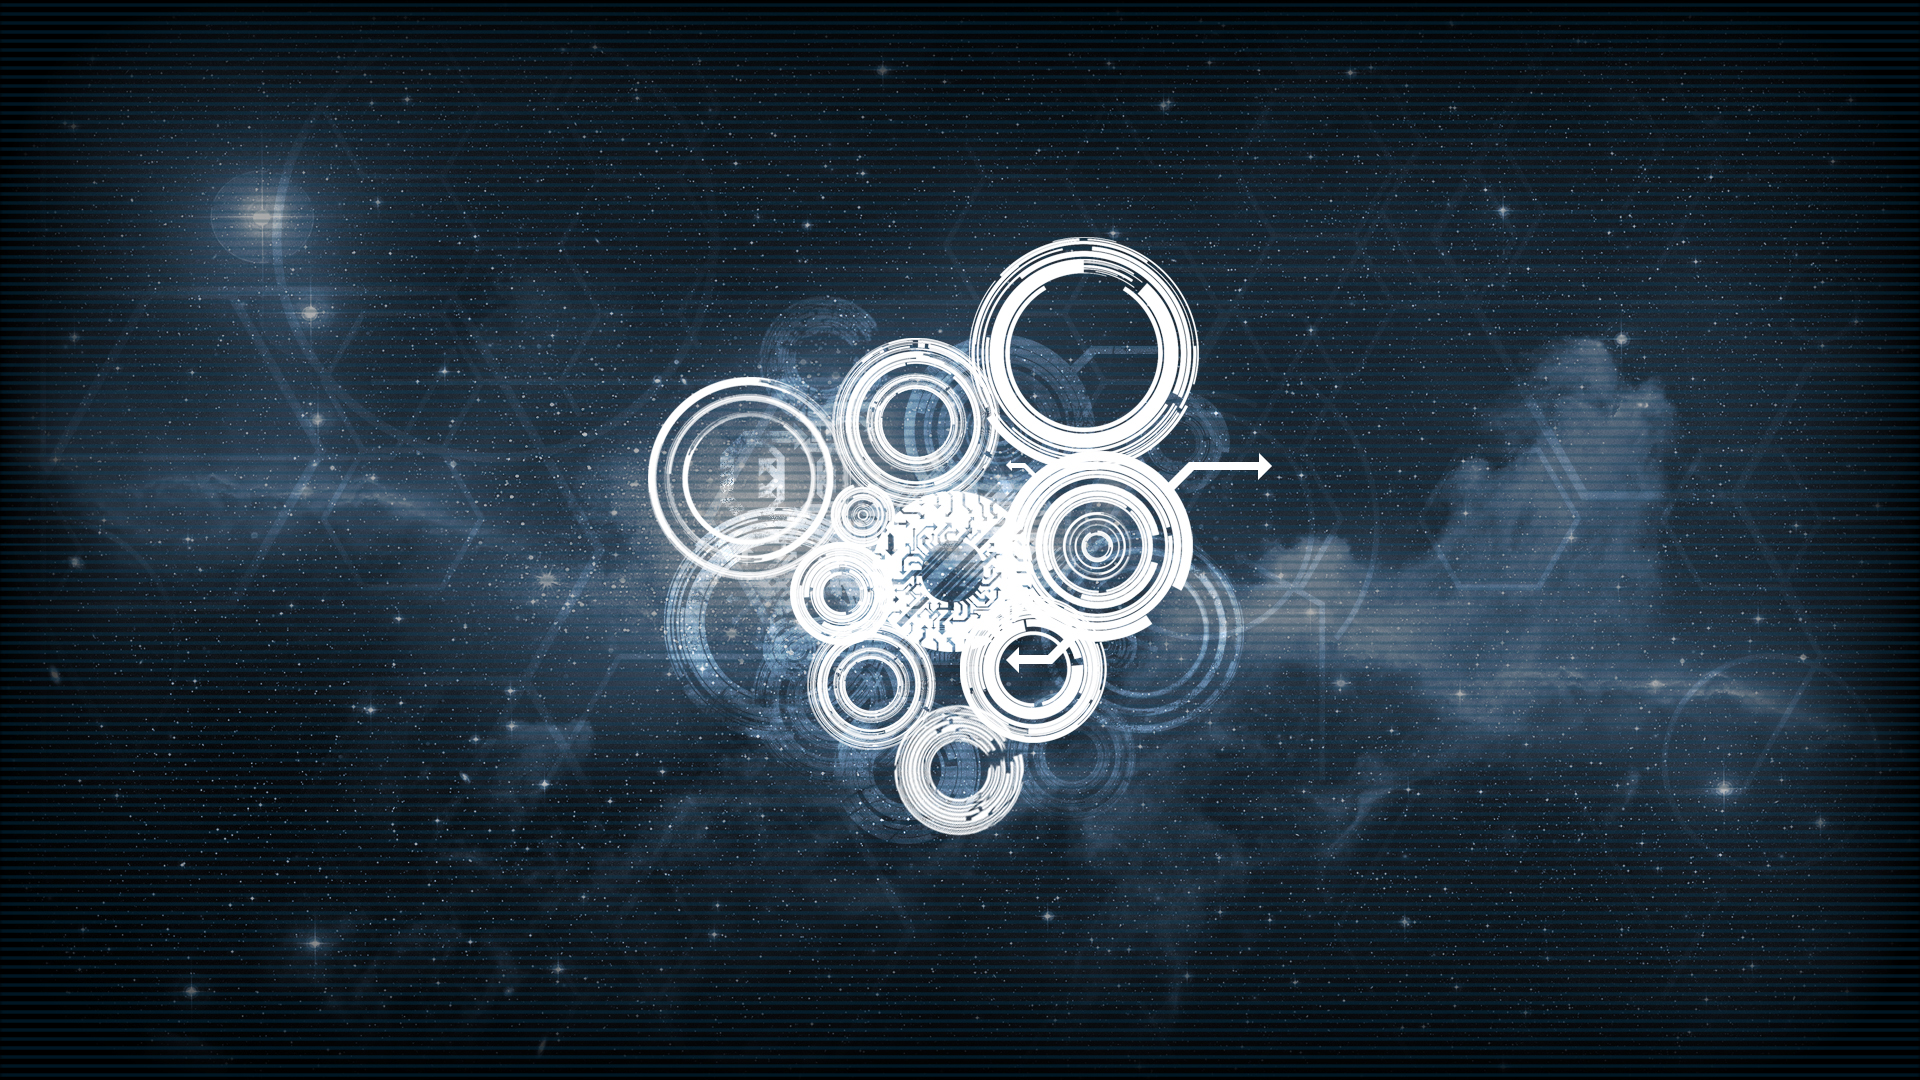 Sci Fi Tech wallpaper   1115674 1920x1080